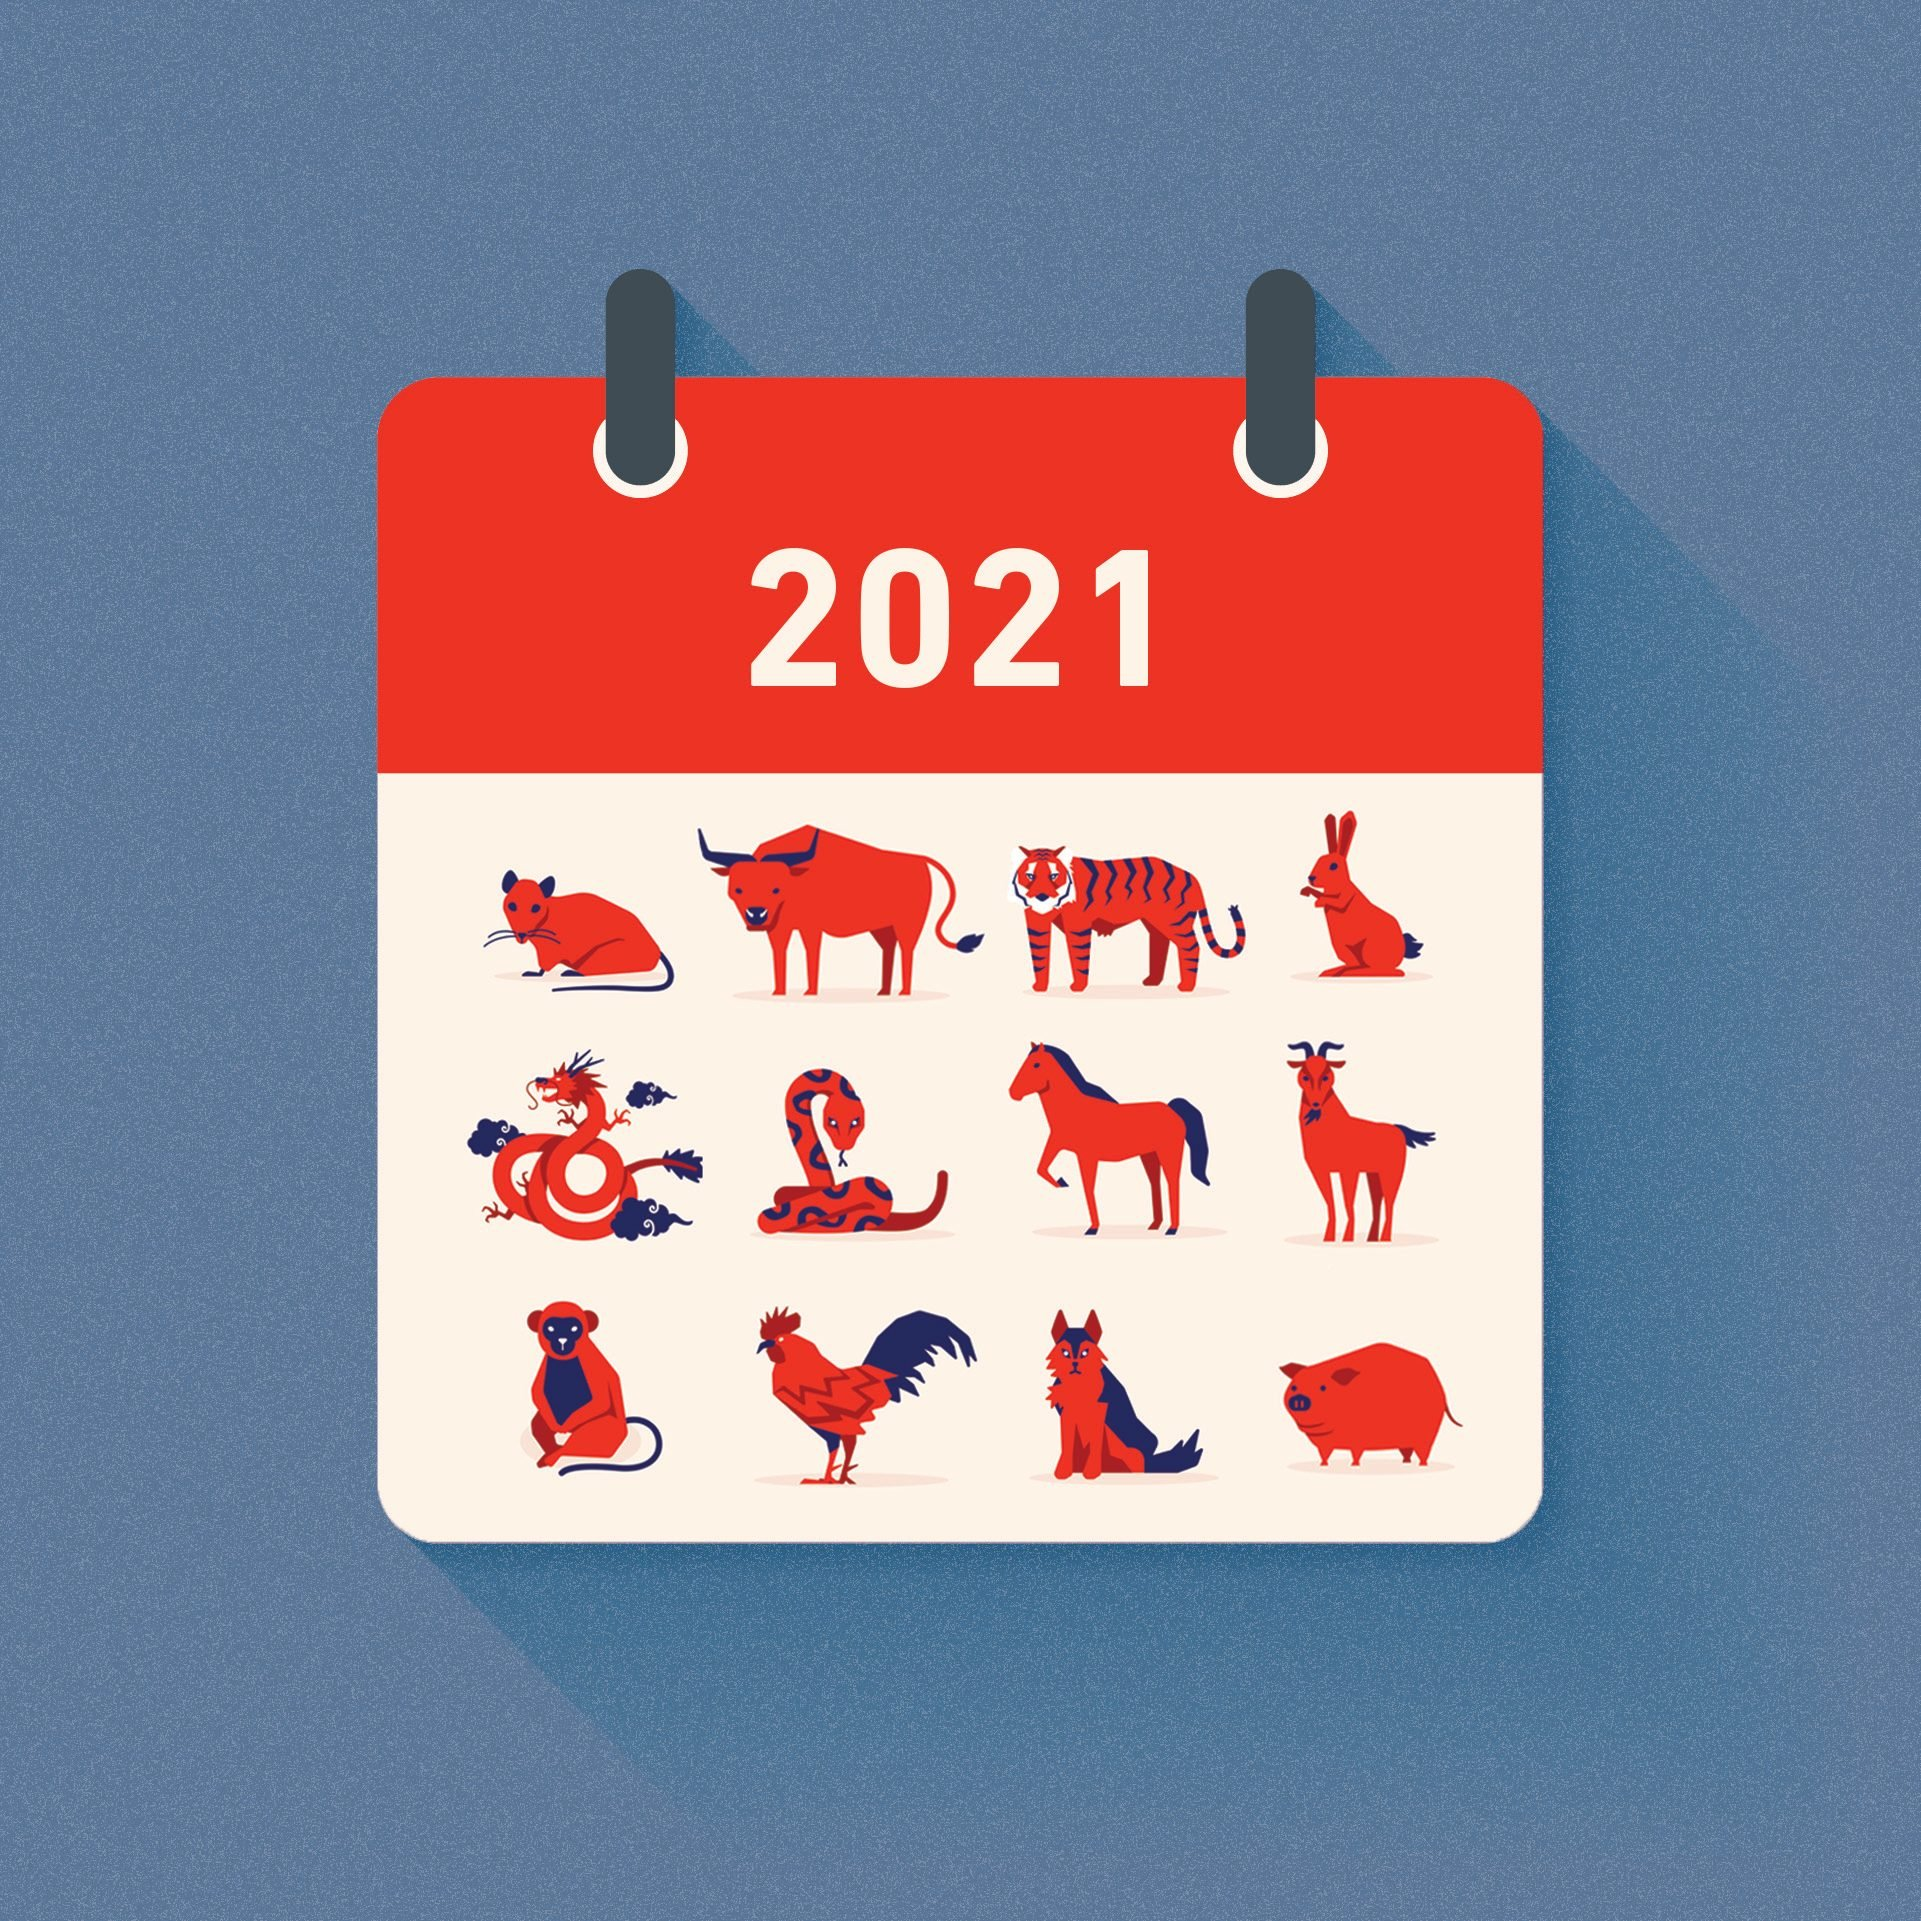 chinese zodiac 2021 ox the year of the ox